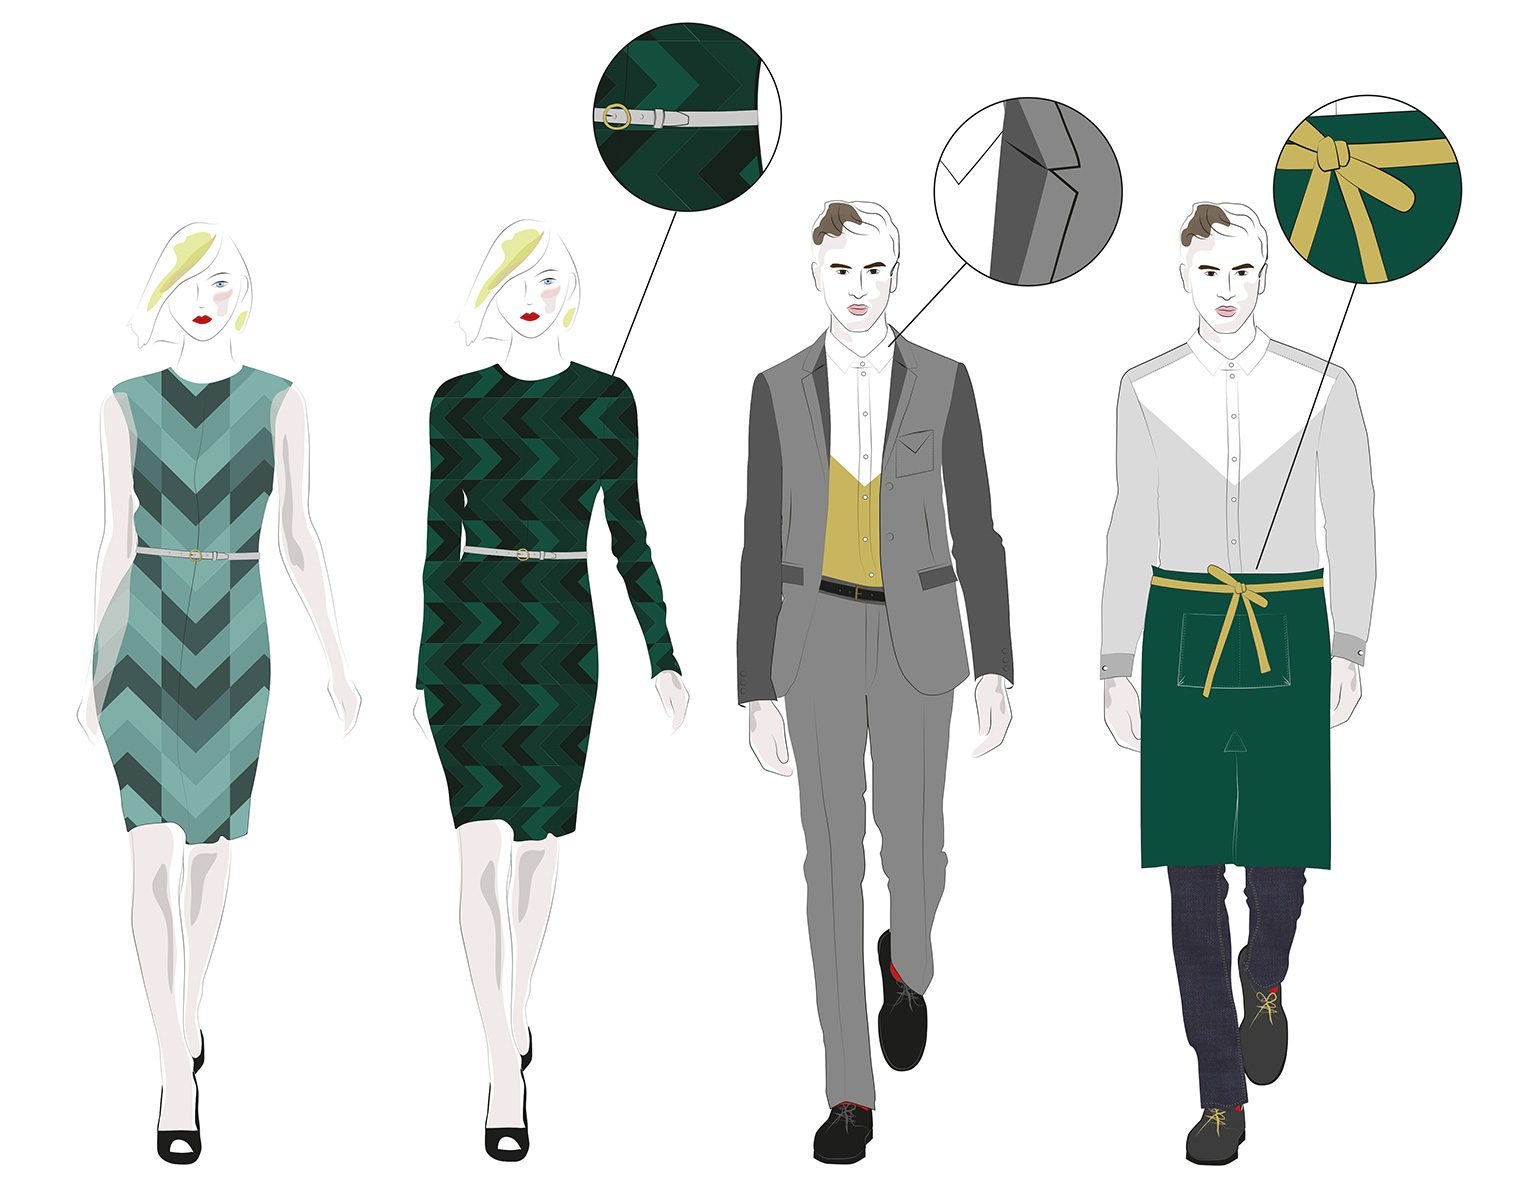 field-grey-illustration-bespoke-collection-menswear-womenswear-uniform-hotelfootball